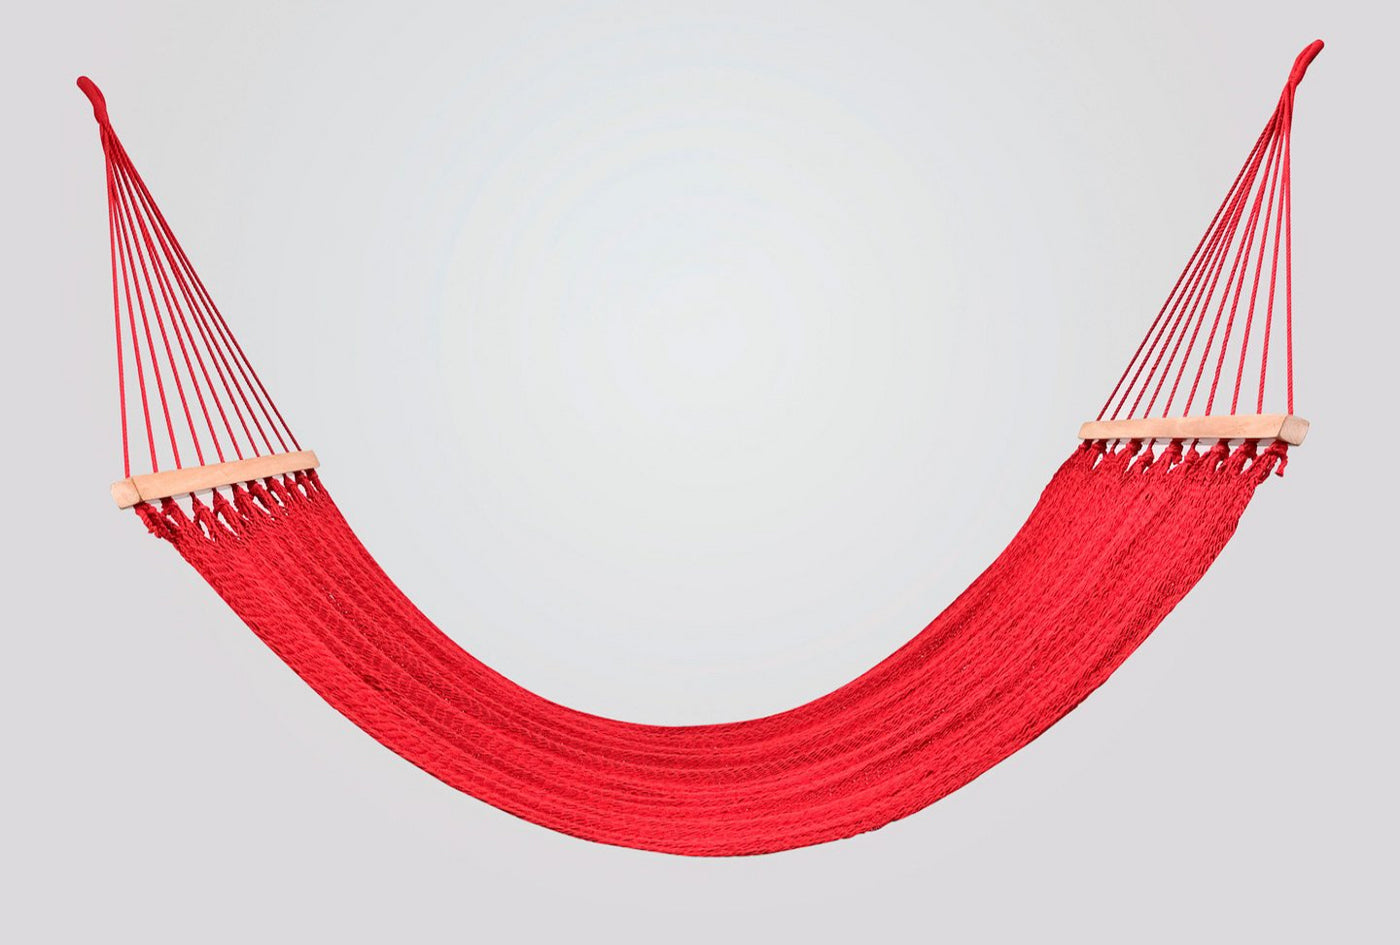 Cotton Red Hammock Wooden Bar Handmade High Quality